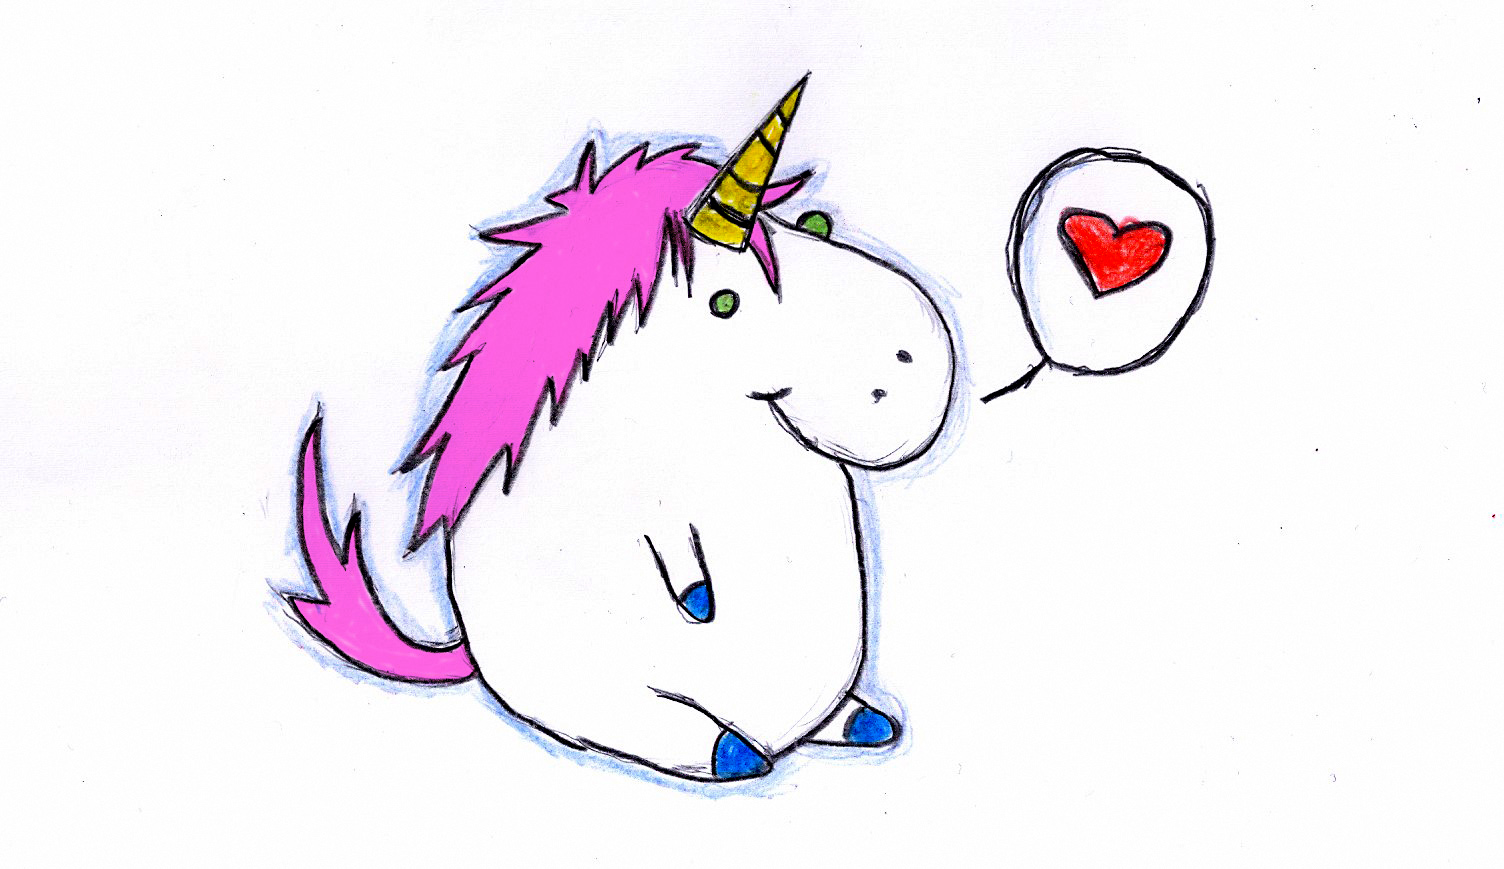 Cartoon Unicorn Wallpaper together with 221 Draw Goldfinch Bird likewise Illustration Watercolor Sea Ocean 1807105 besides Beate S Transformation 405297350 moreover Cuties. on how do you draw a cartoon whale